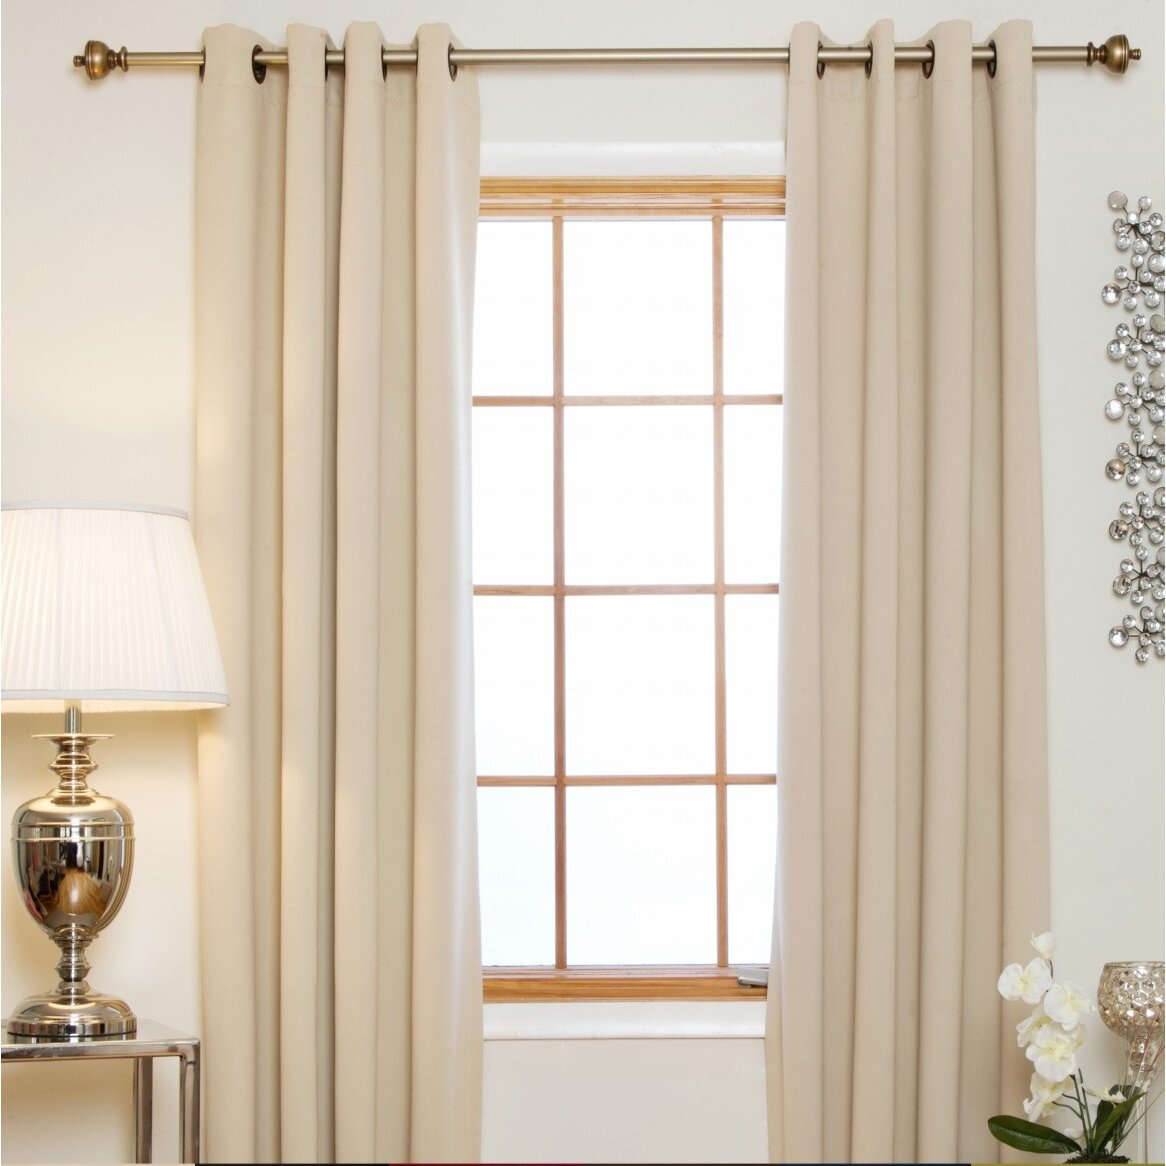 Game Room Window Curtains